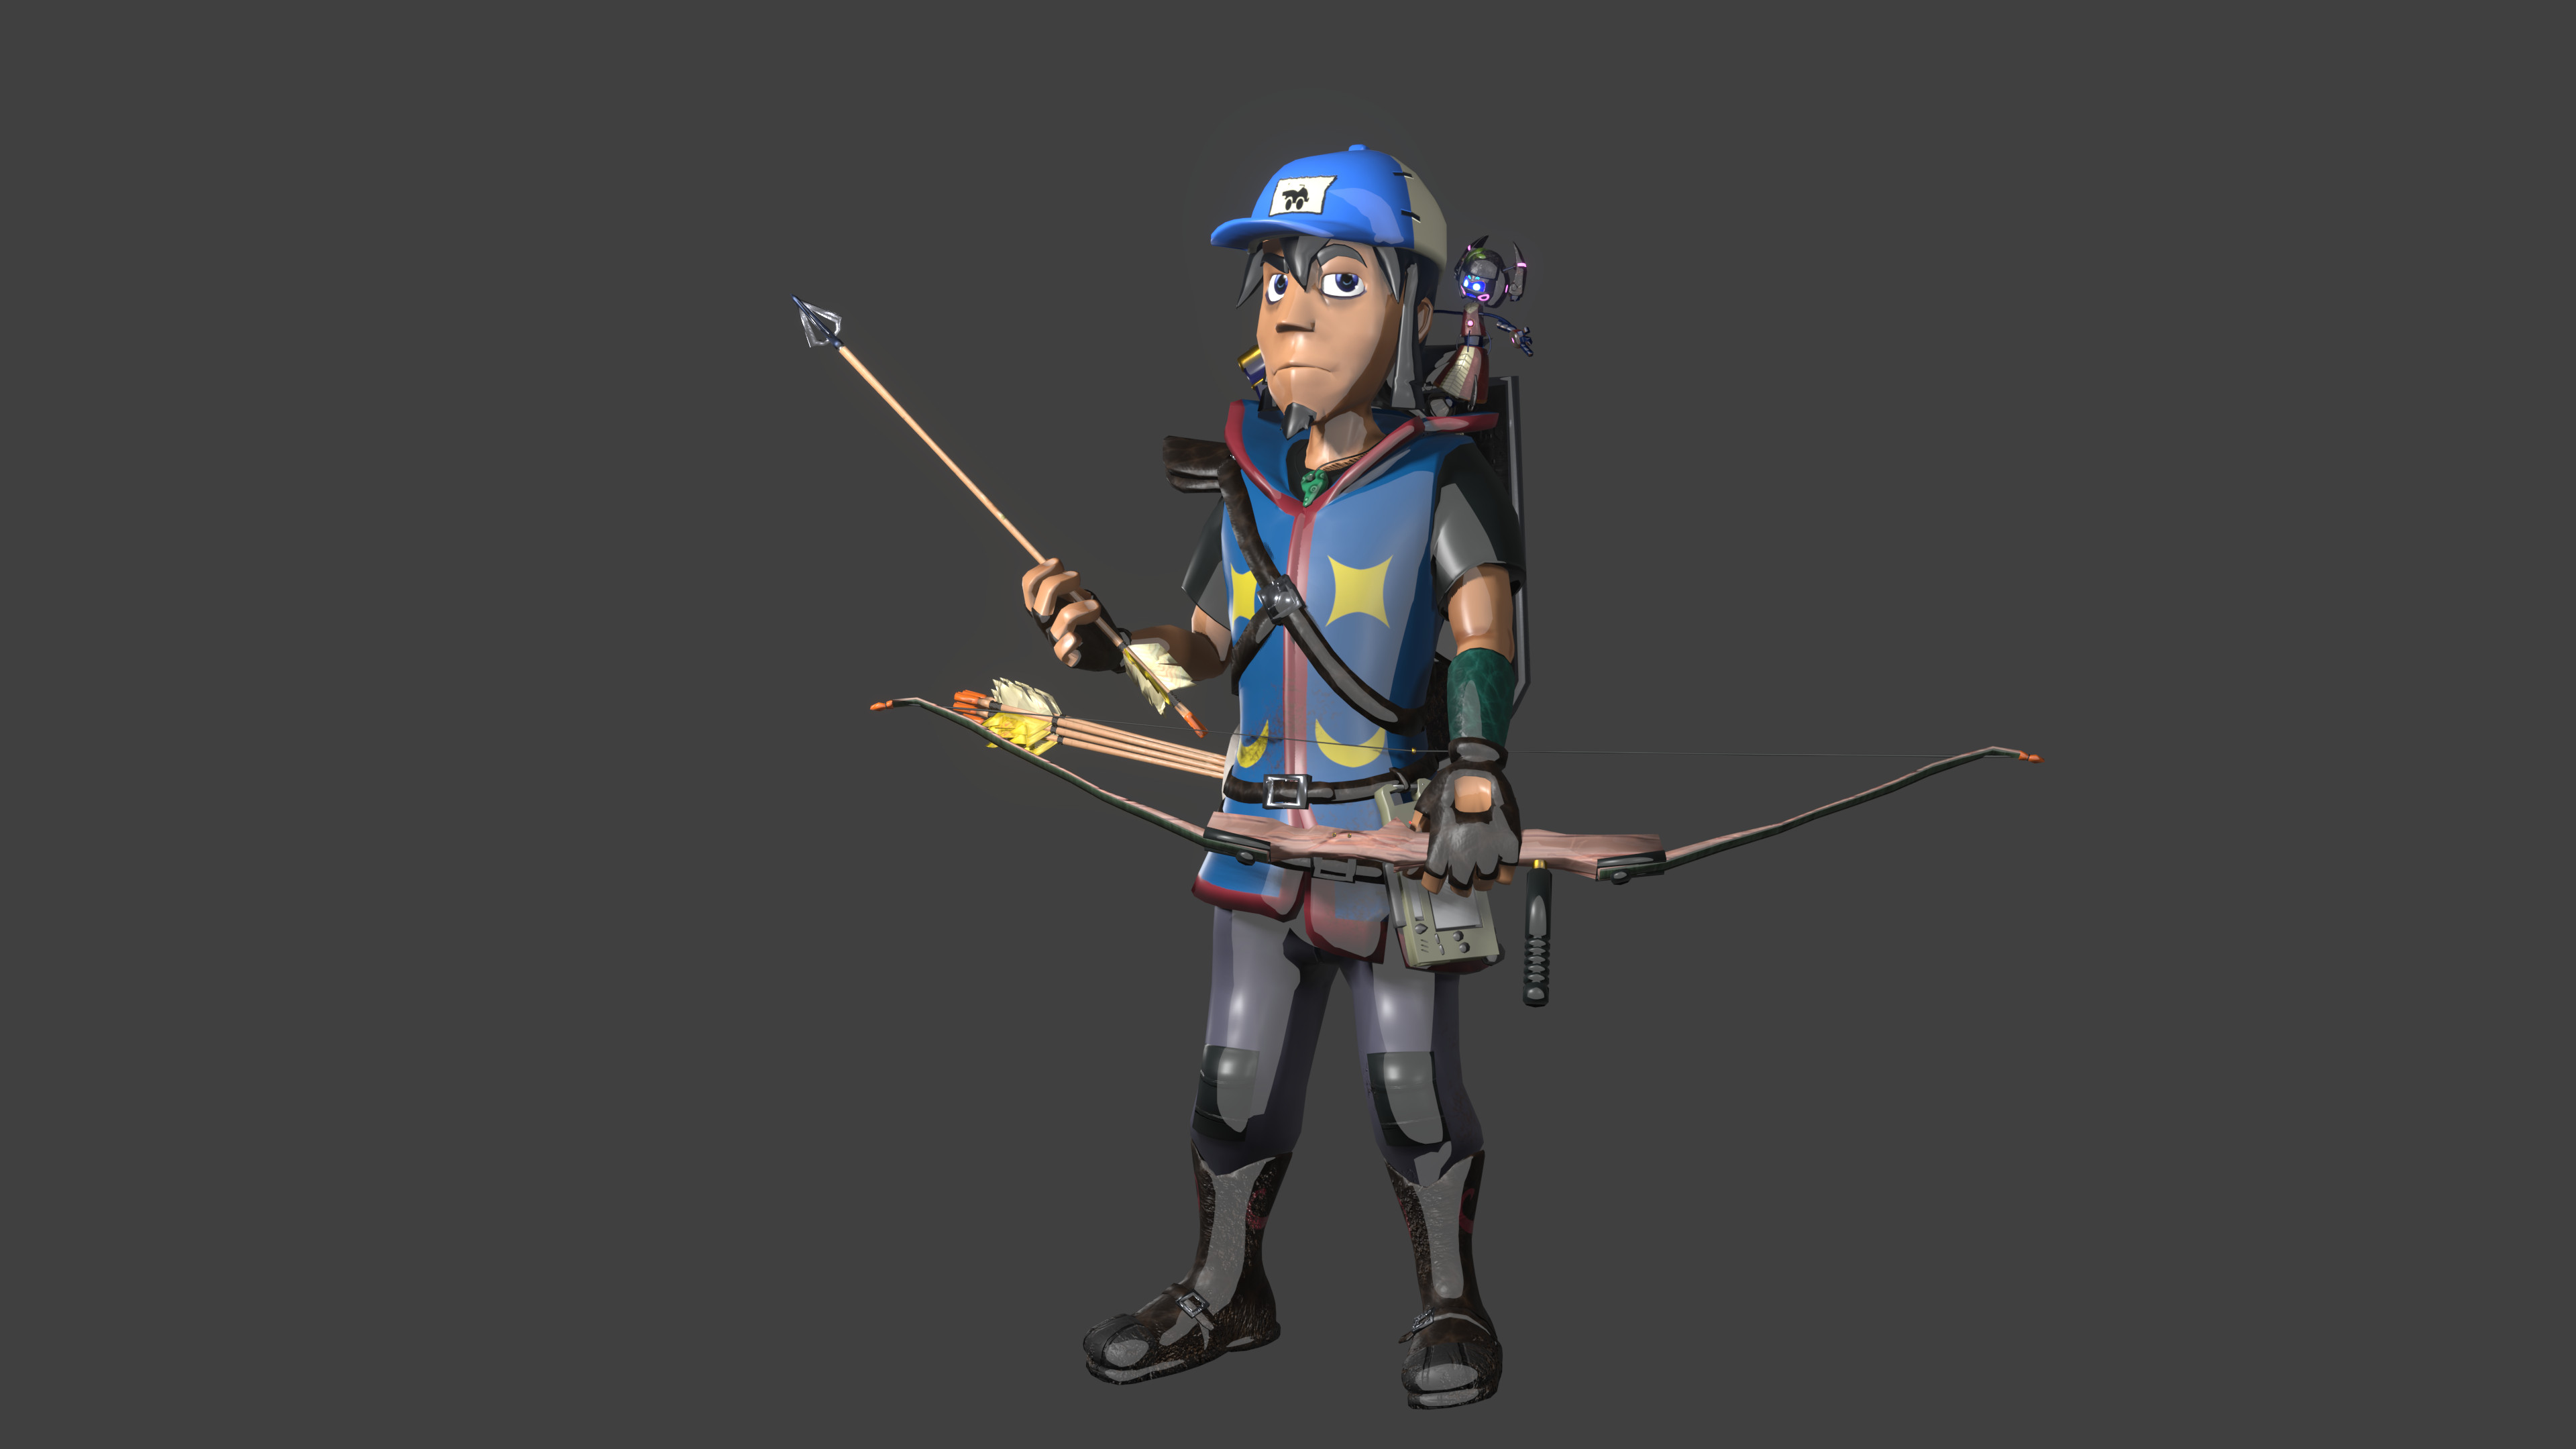 I've done archery IRL just to get ideas for this guy